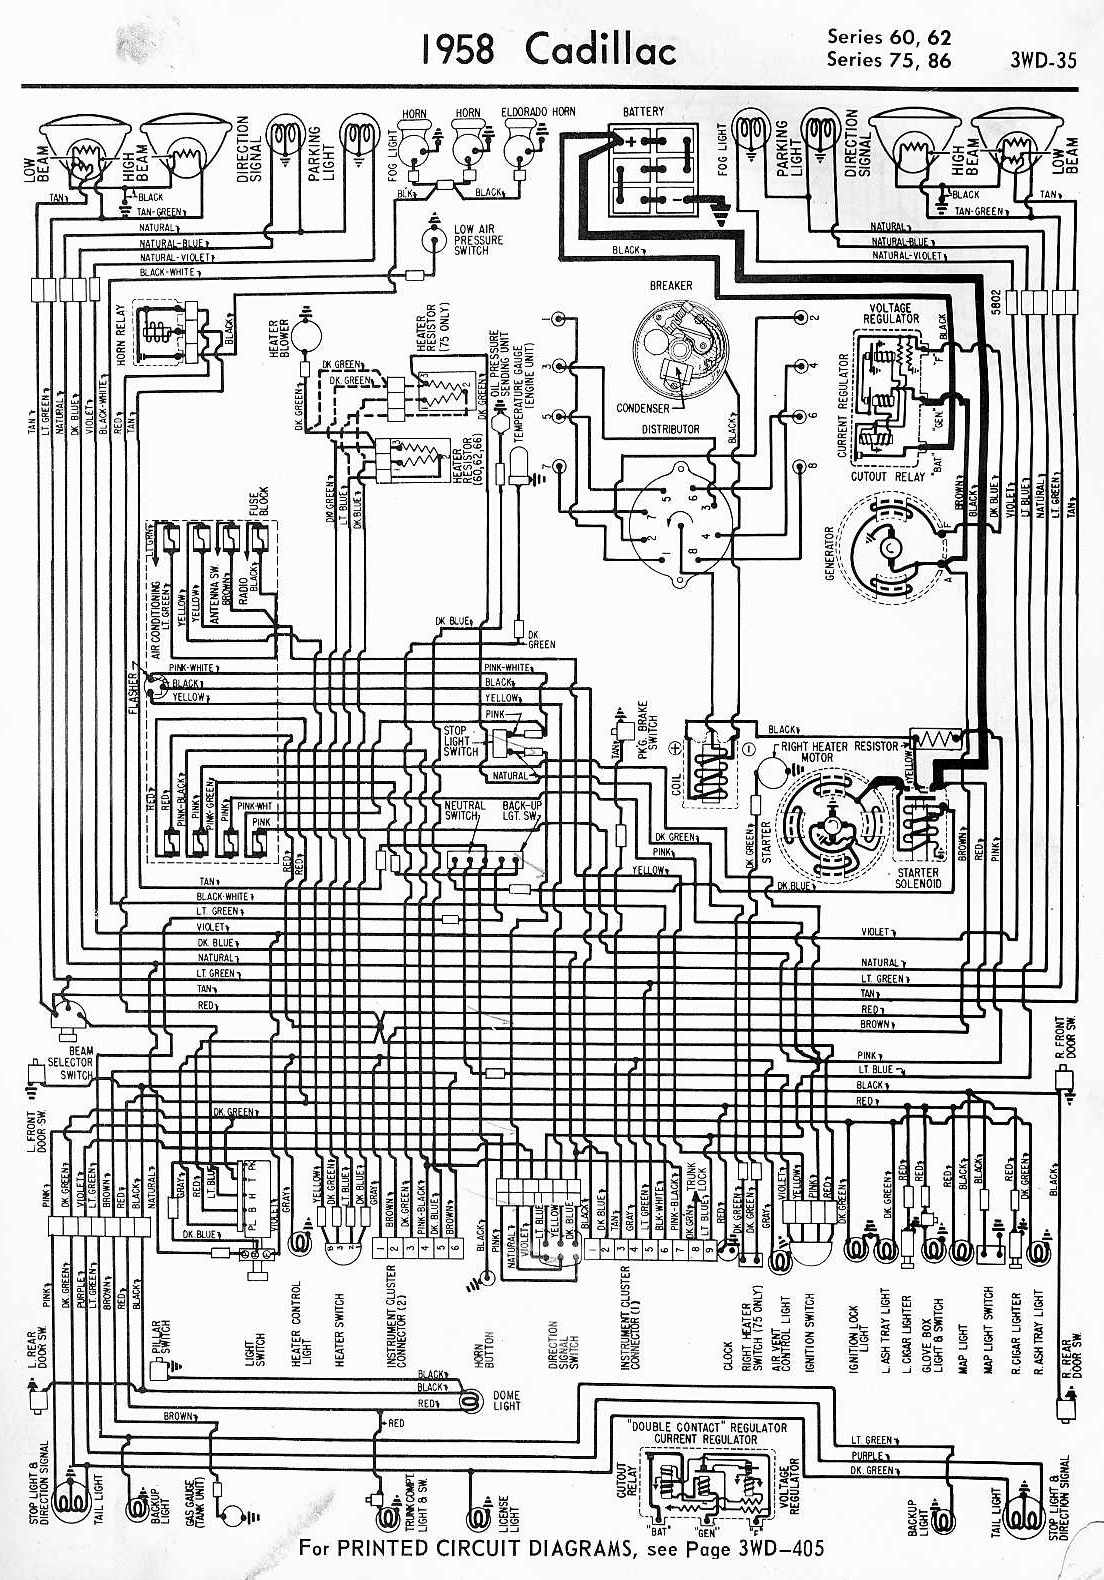 Cadillac Wiring Diagram Automotive Yamaha Virago 920 For 2005 Best Site Harness 1958 1955